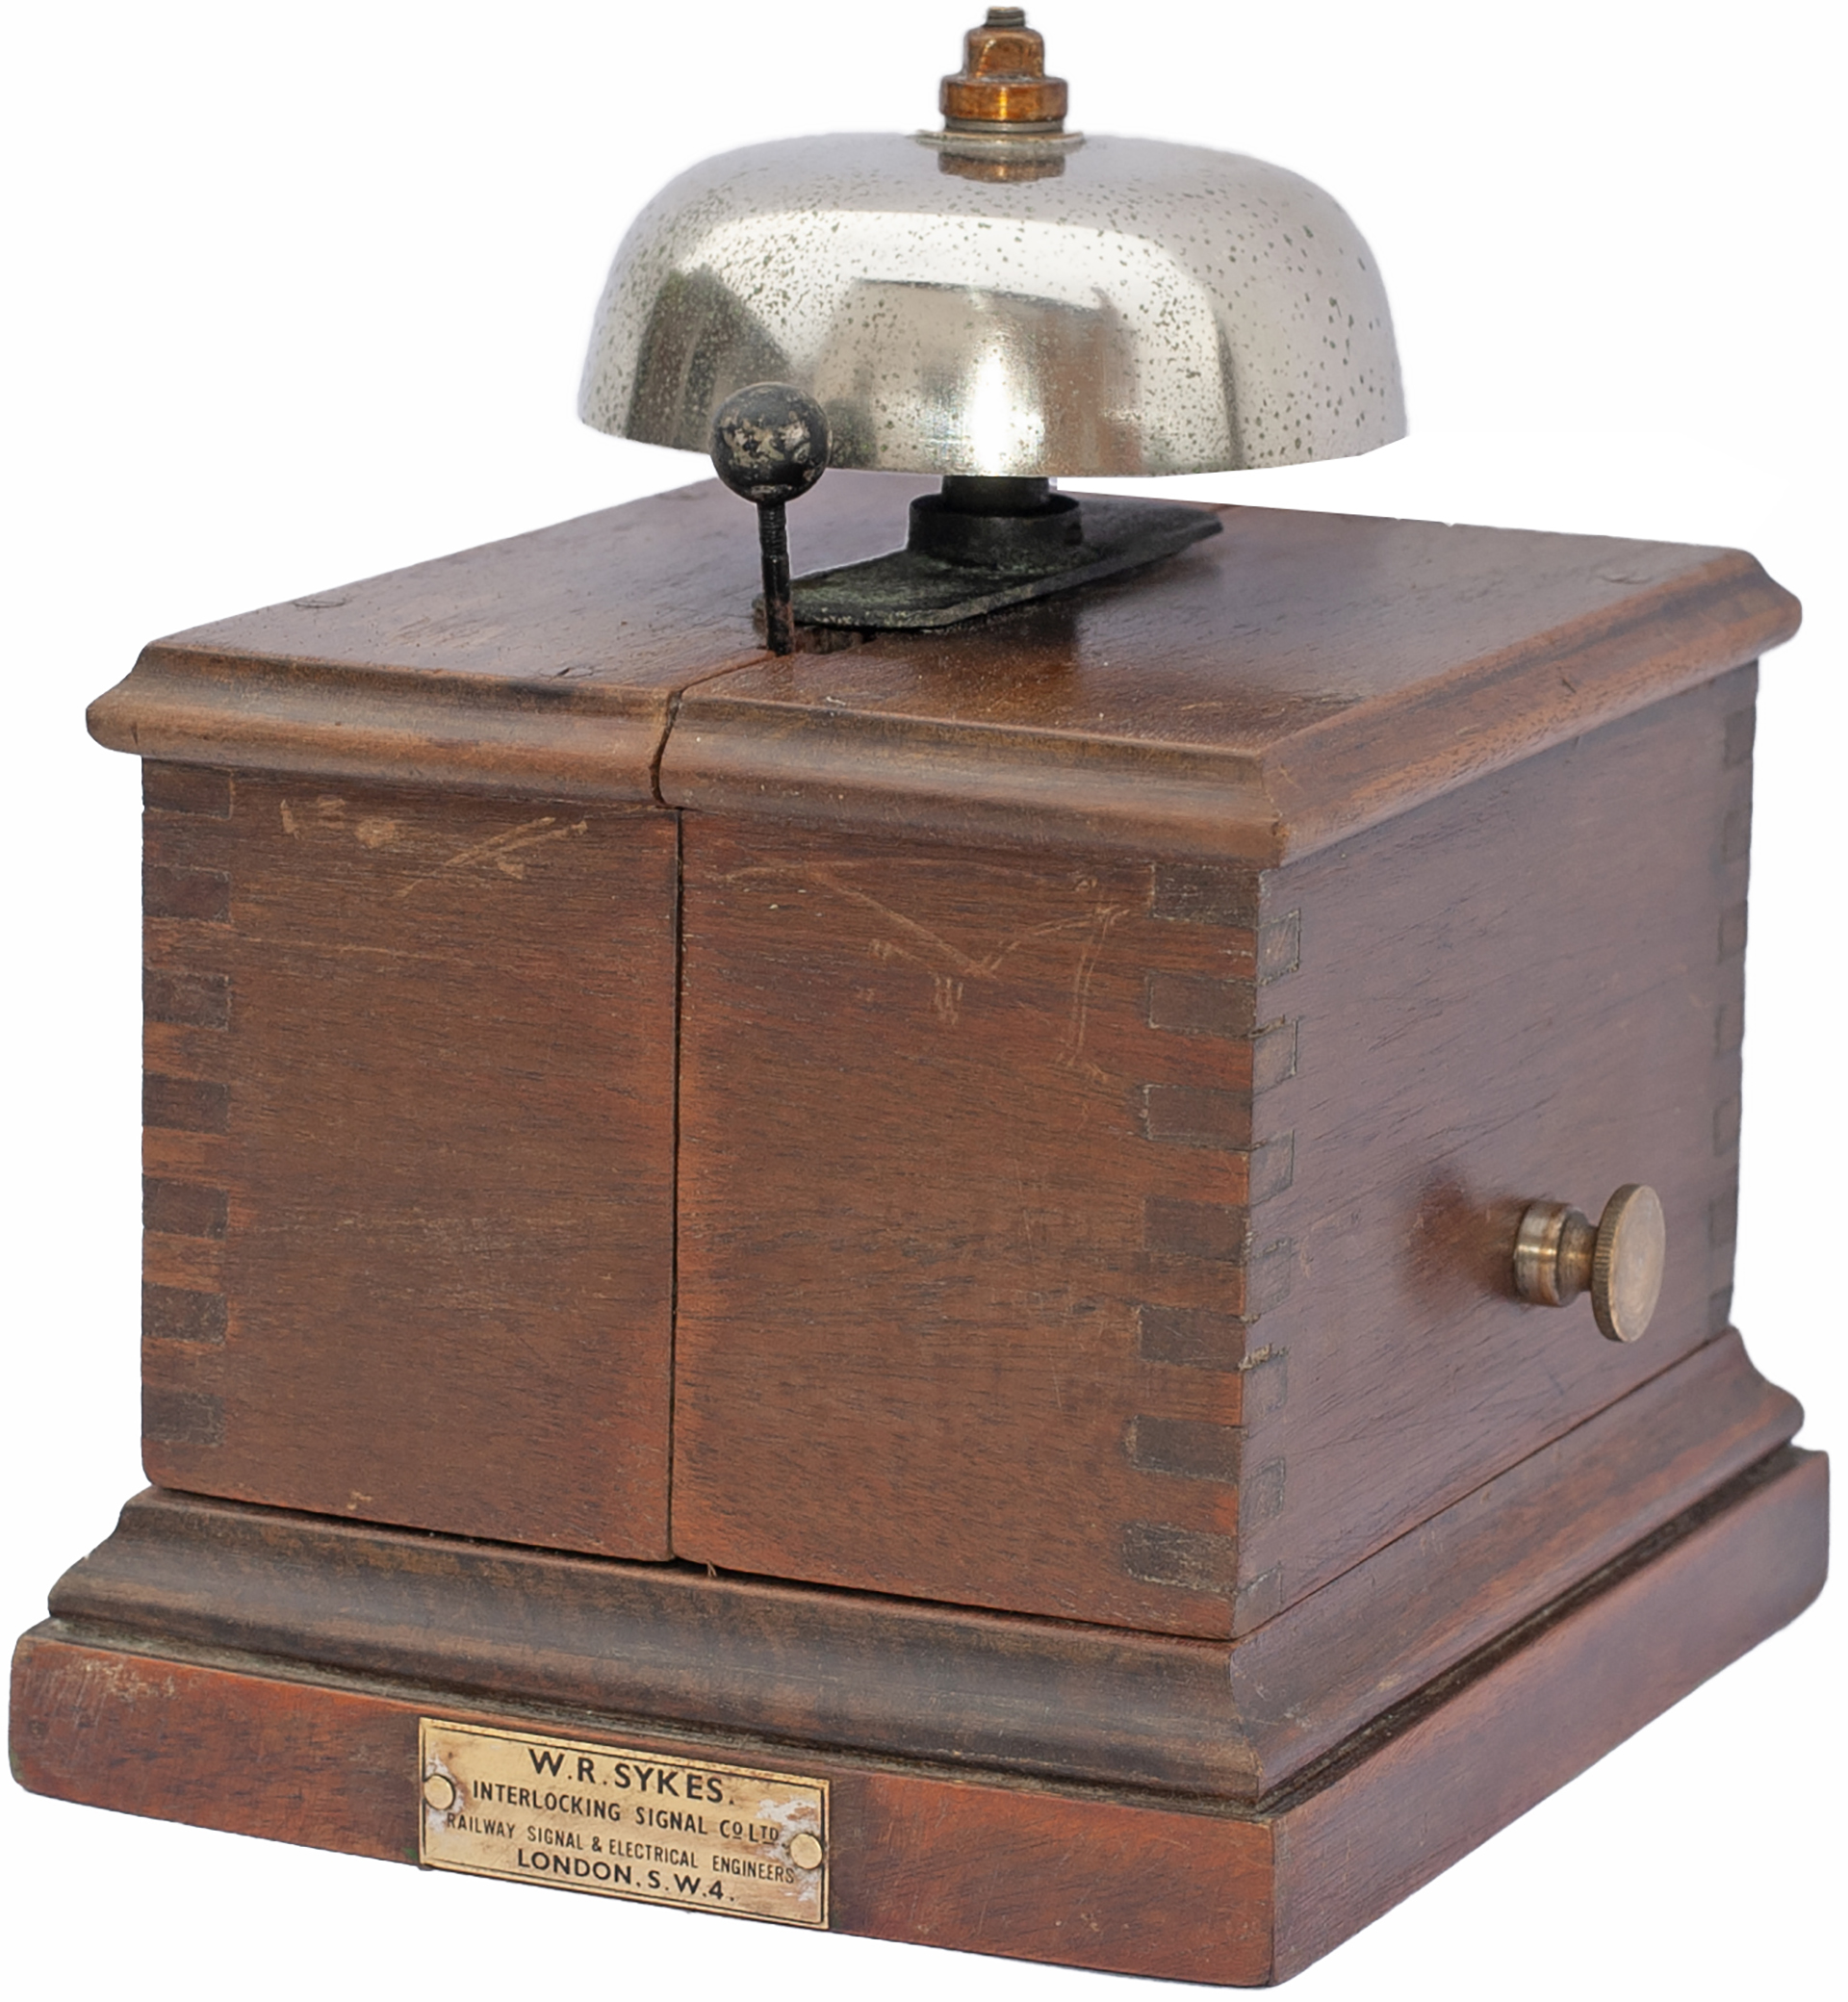 LB&SCR mahogany split cased Block Bell with W.R.SYKES brass makers plate. In very good condition